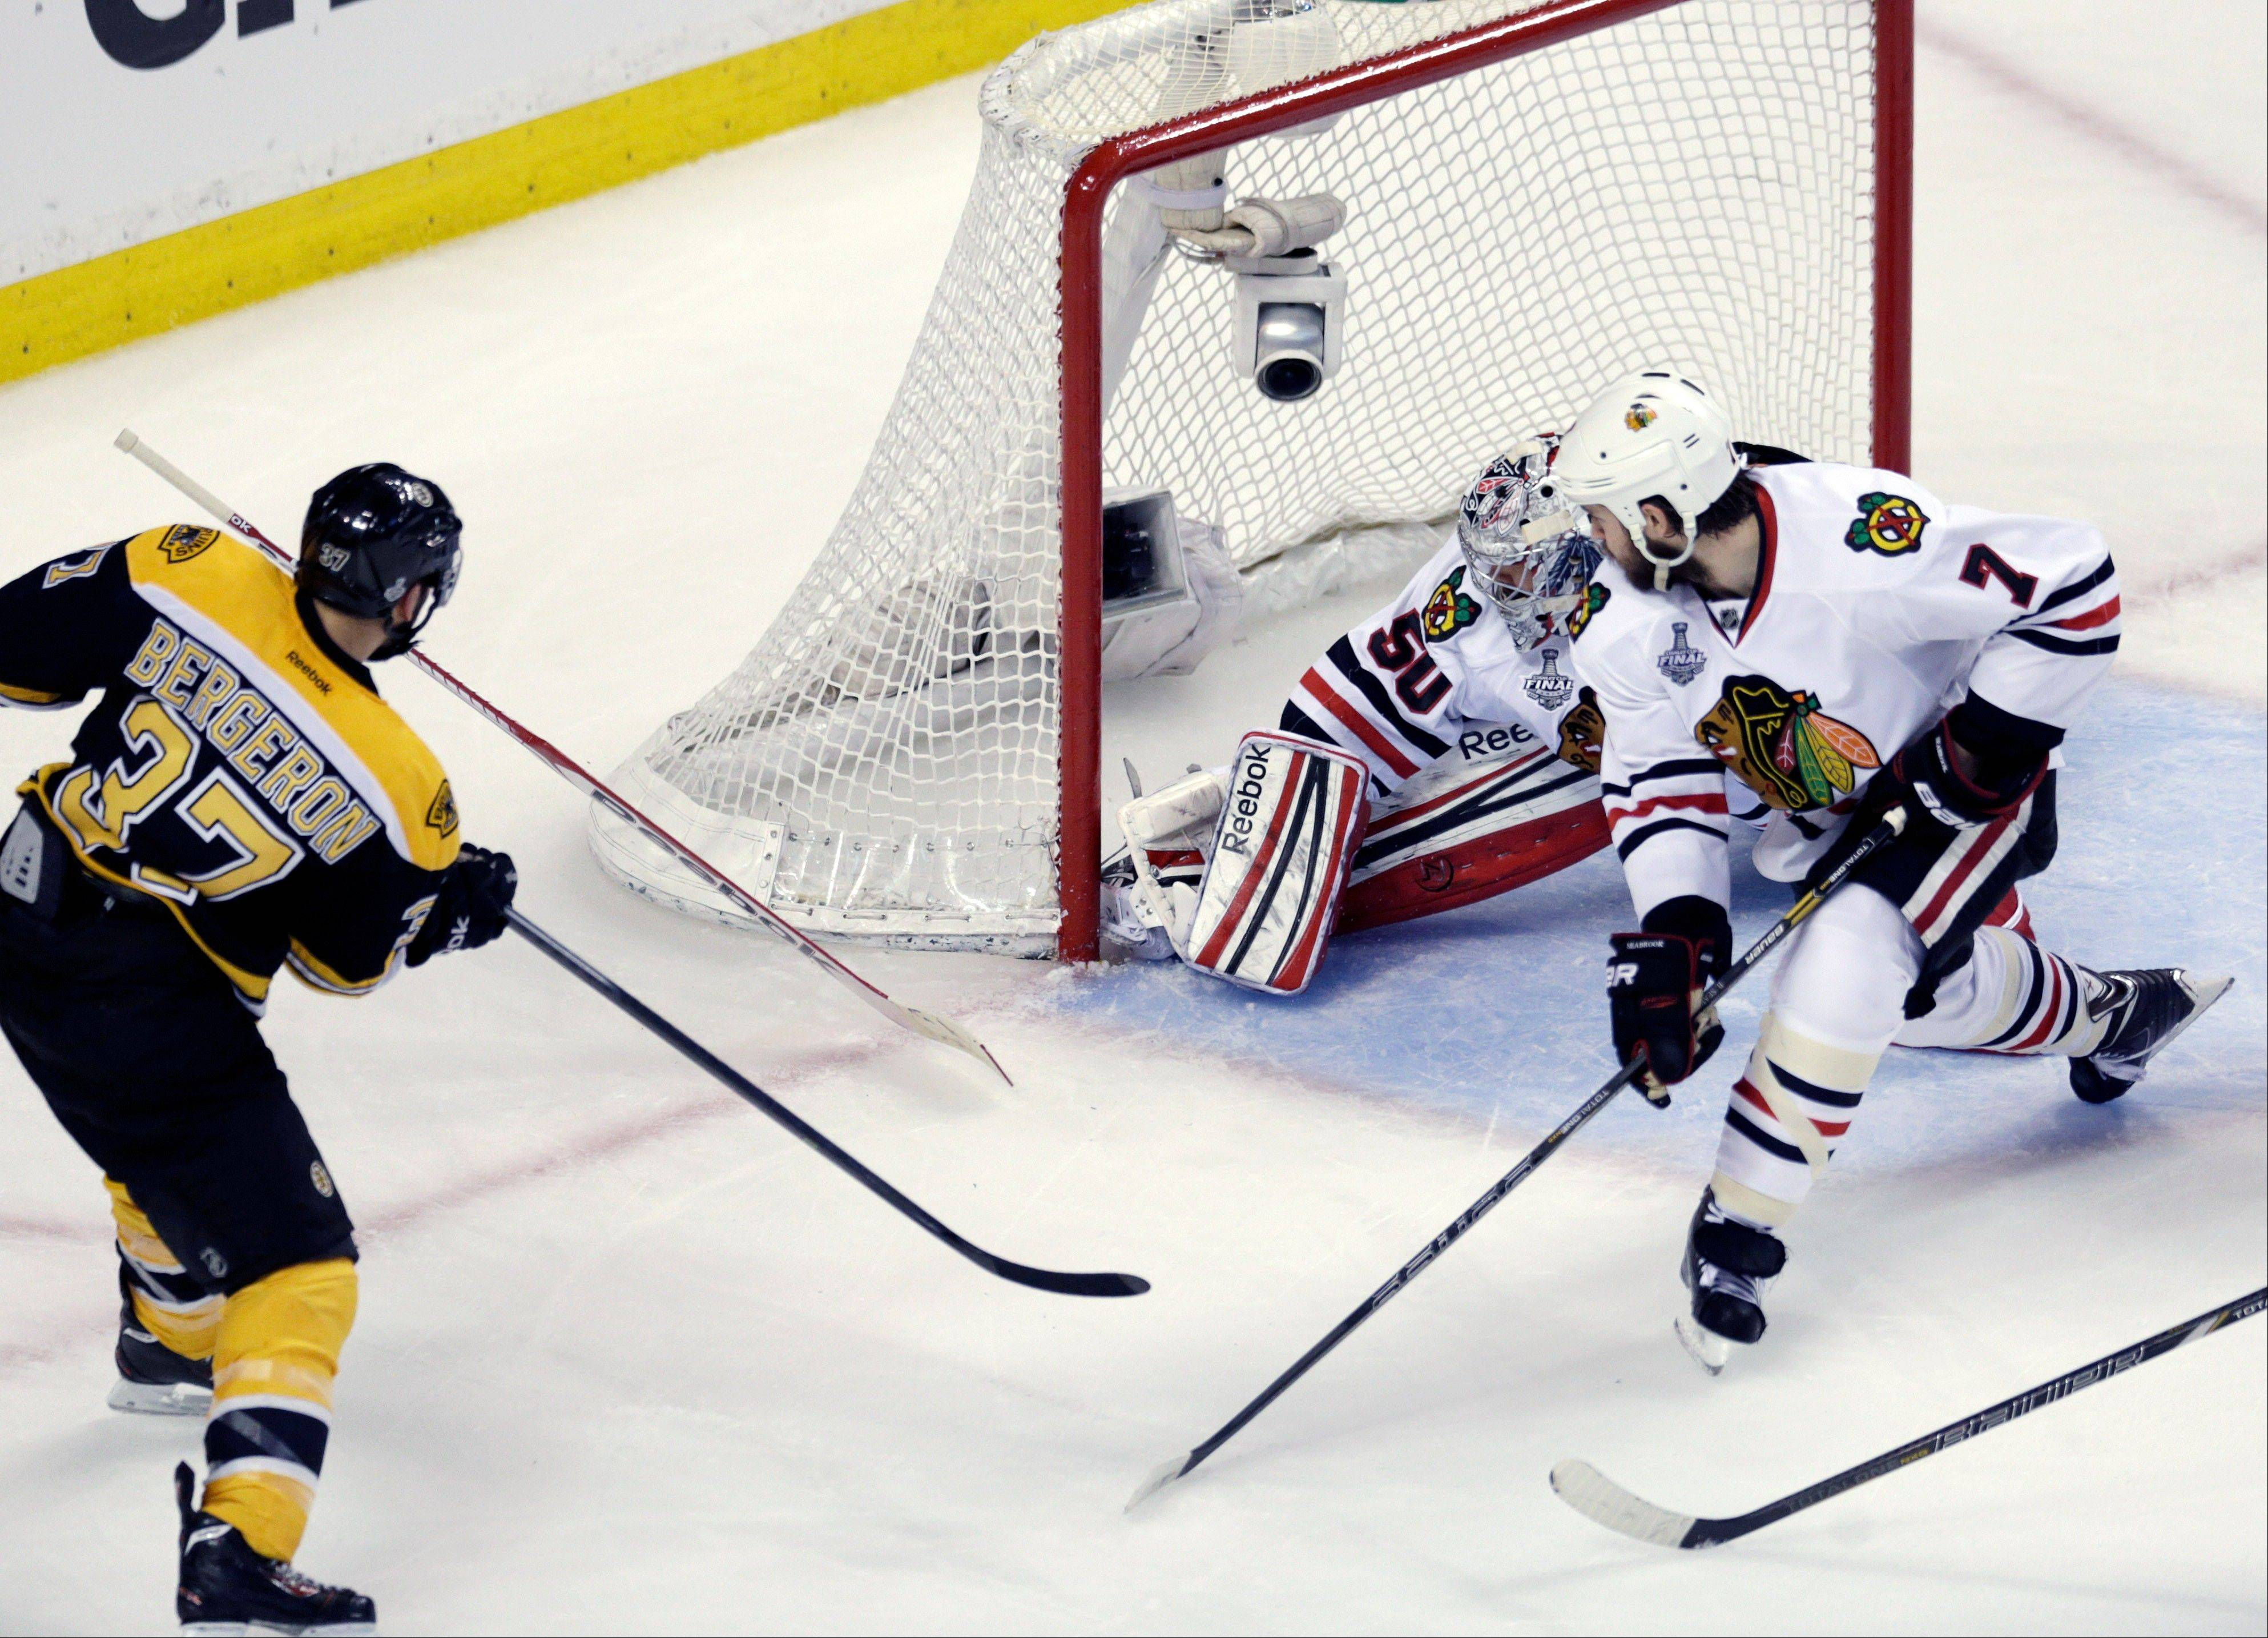 Bruins shut out Hawks 2-0 in Game 3